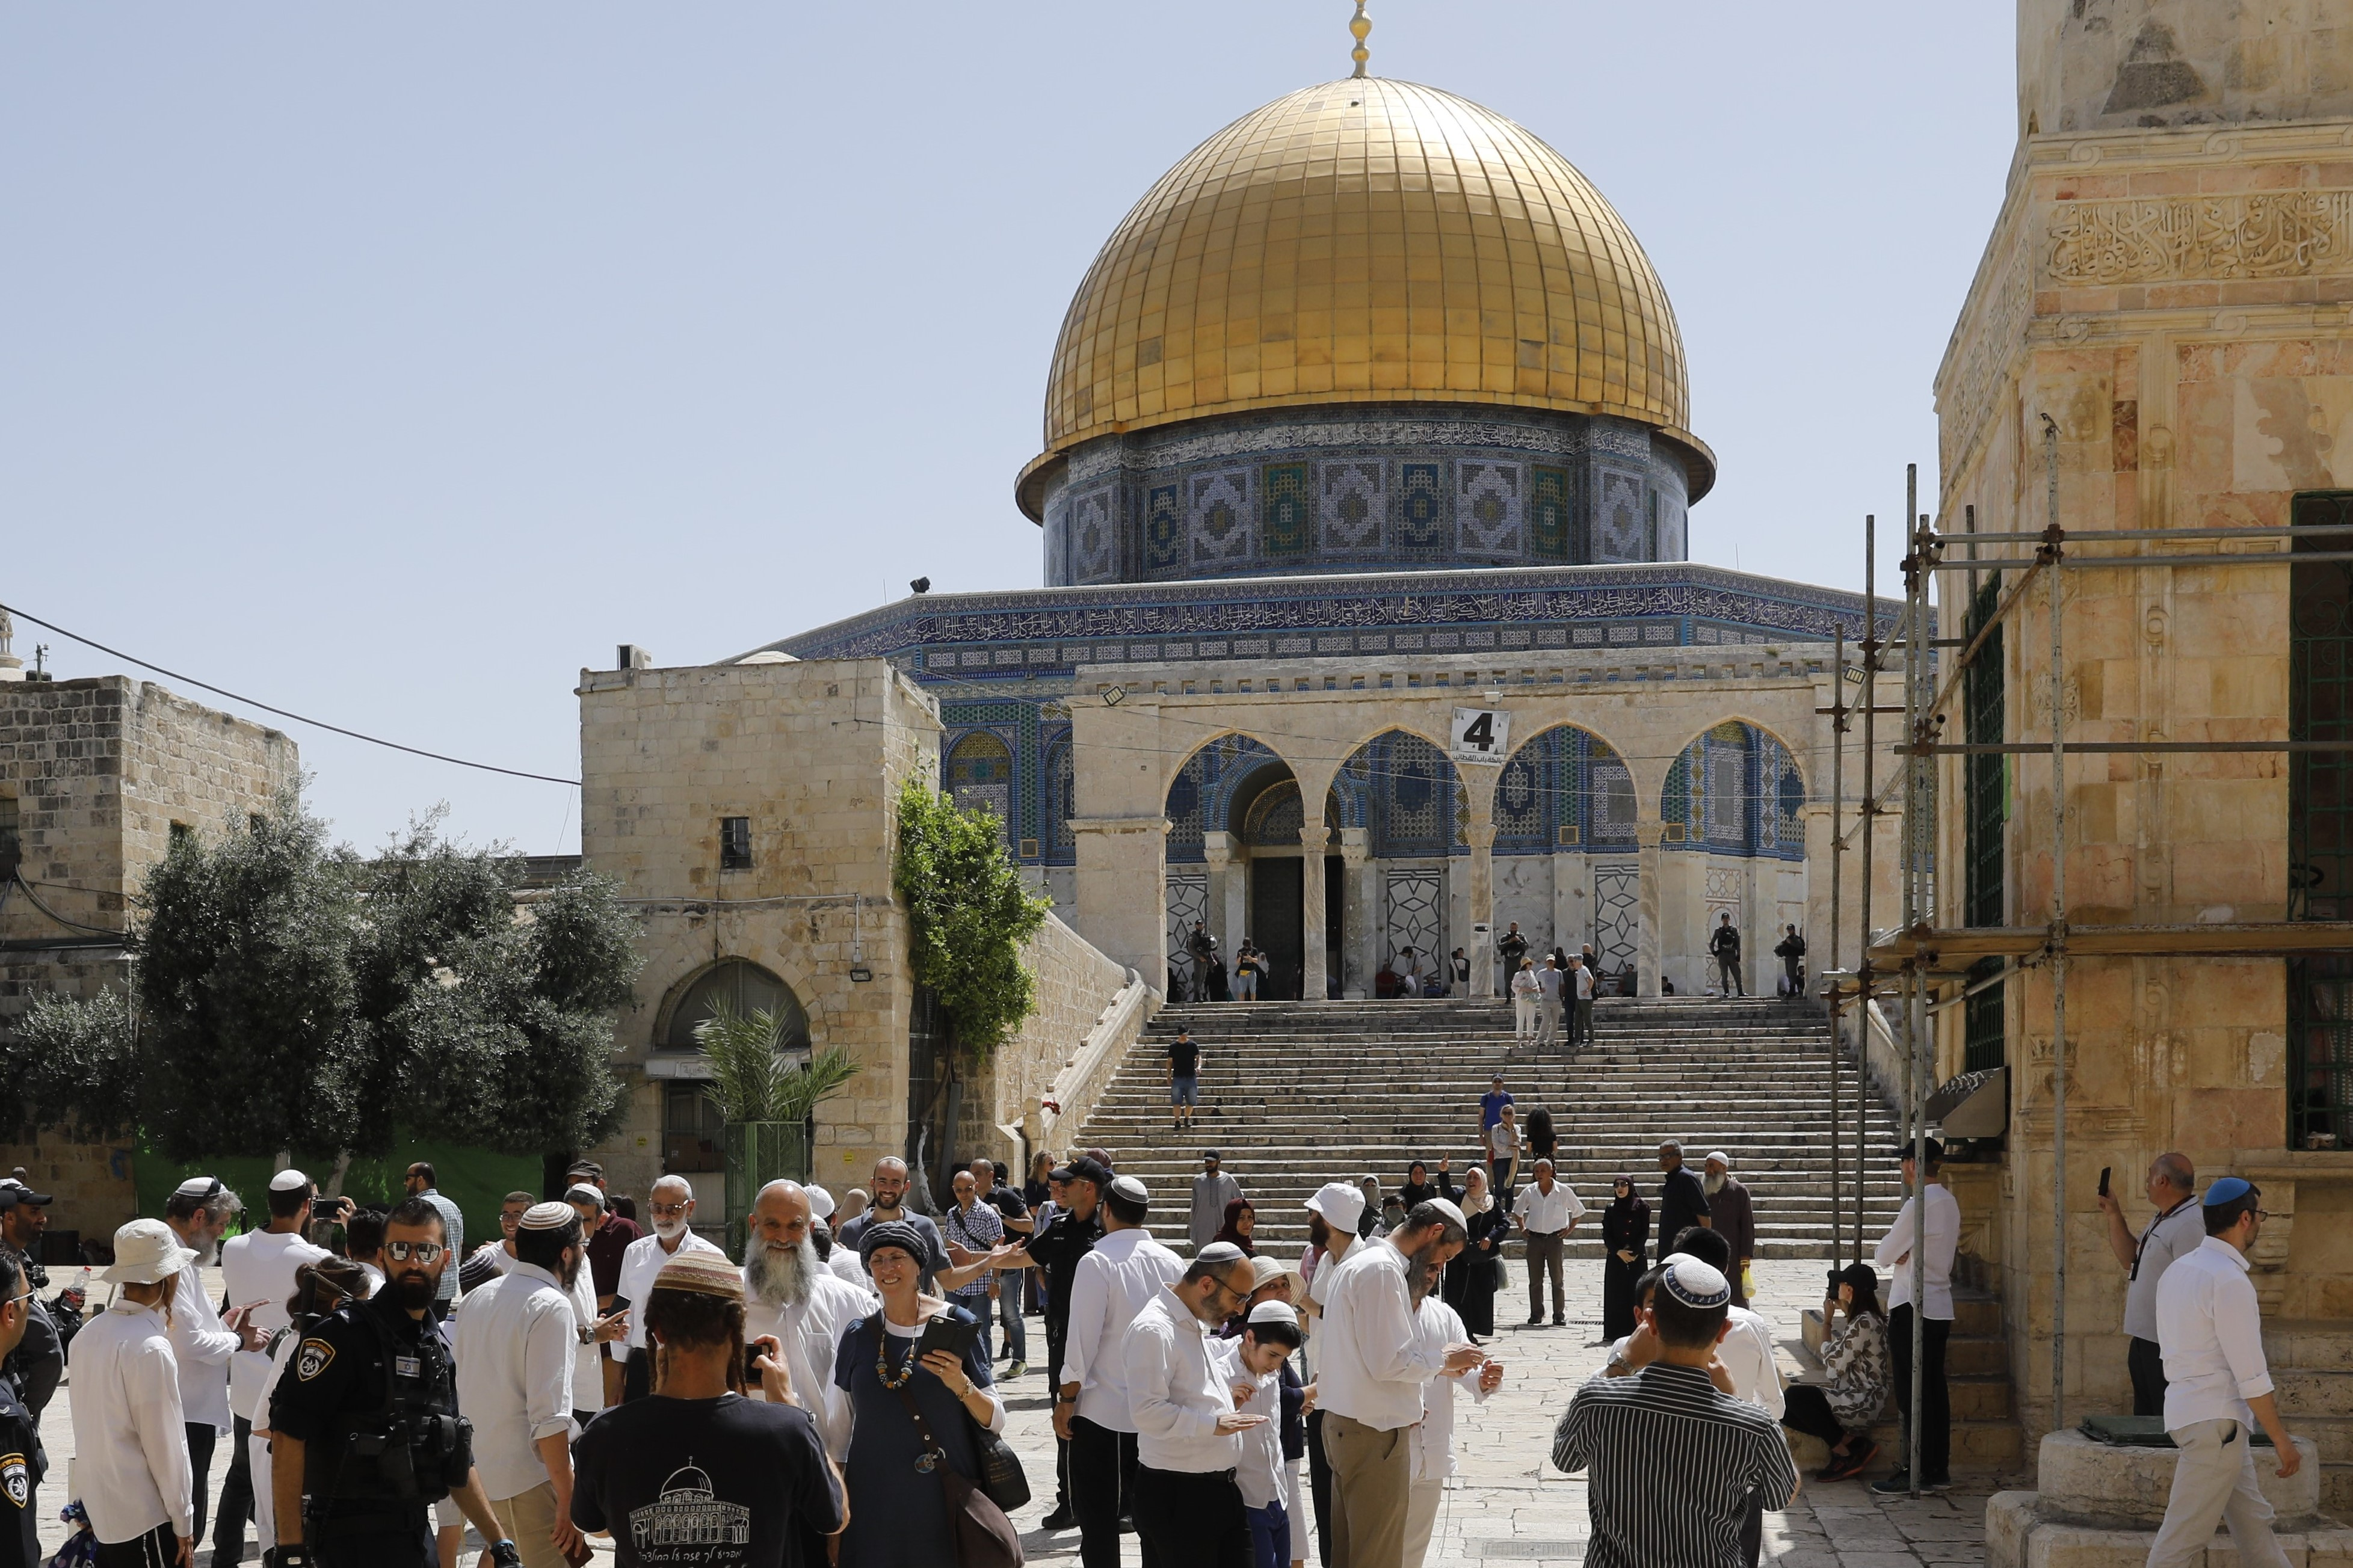 Israeli security forces escort a group of Jewish settlers visiting the Al-Aqsa Mosque compound on 2 June (AFP)